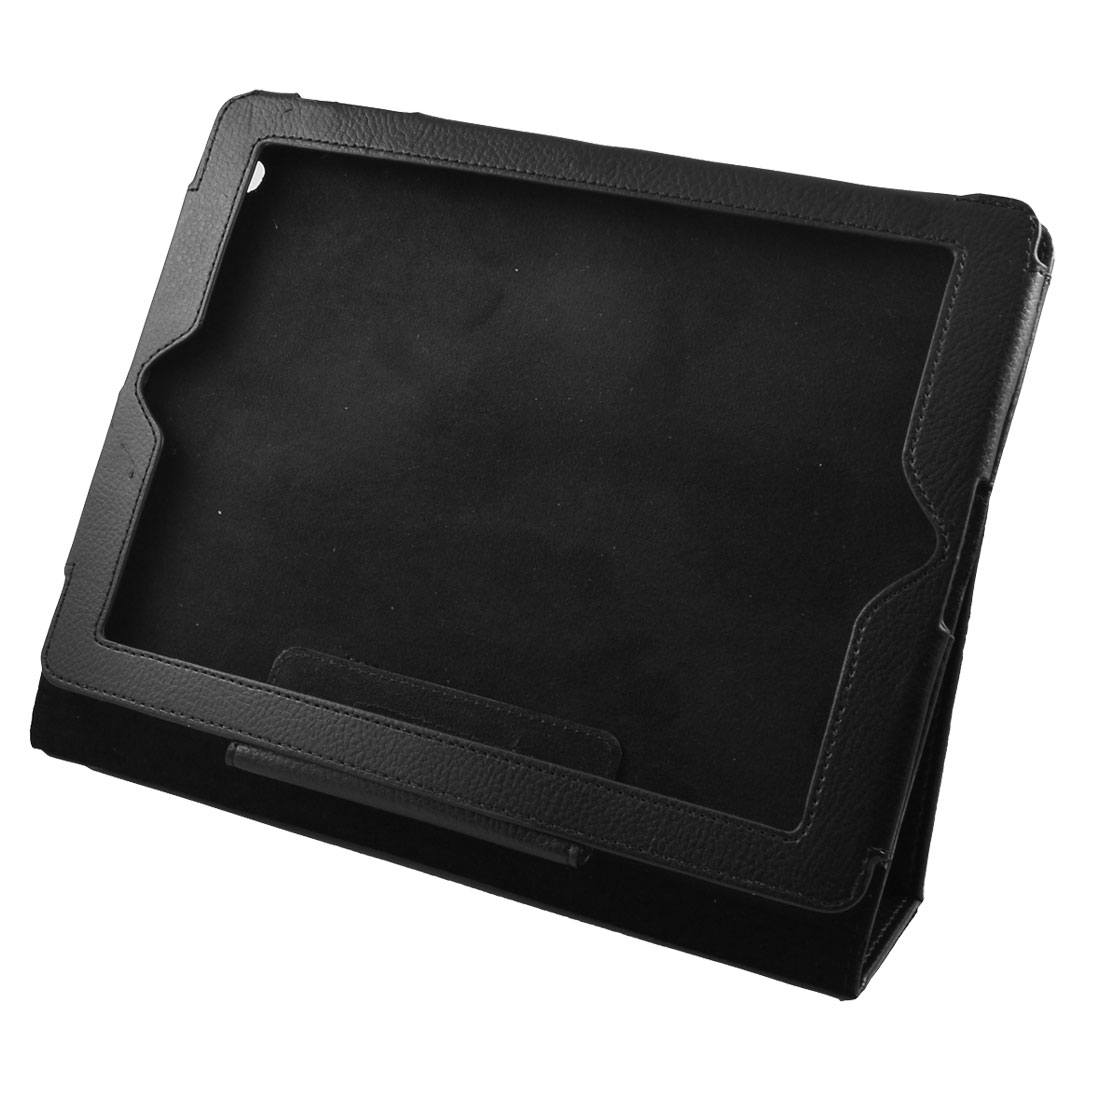 Black Faux Leather Hook Loop Fastener Cover Pouch for iPad 2nd 3